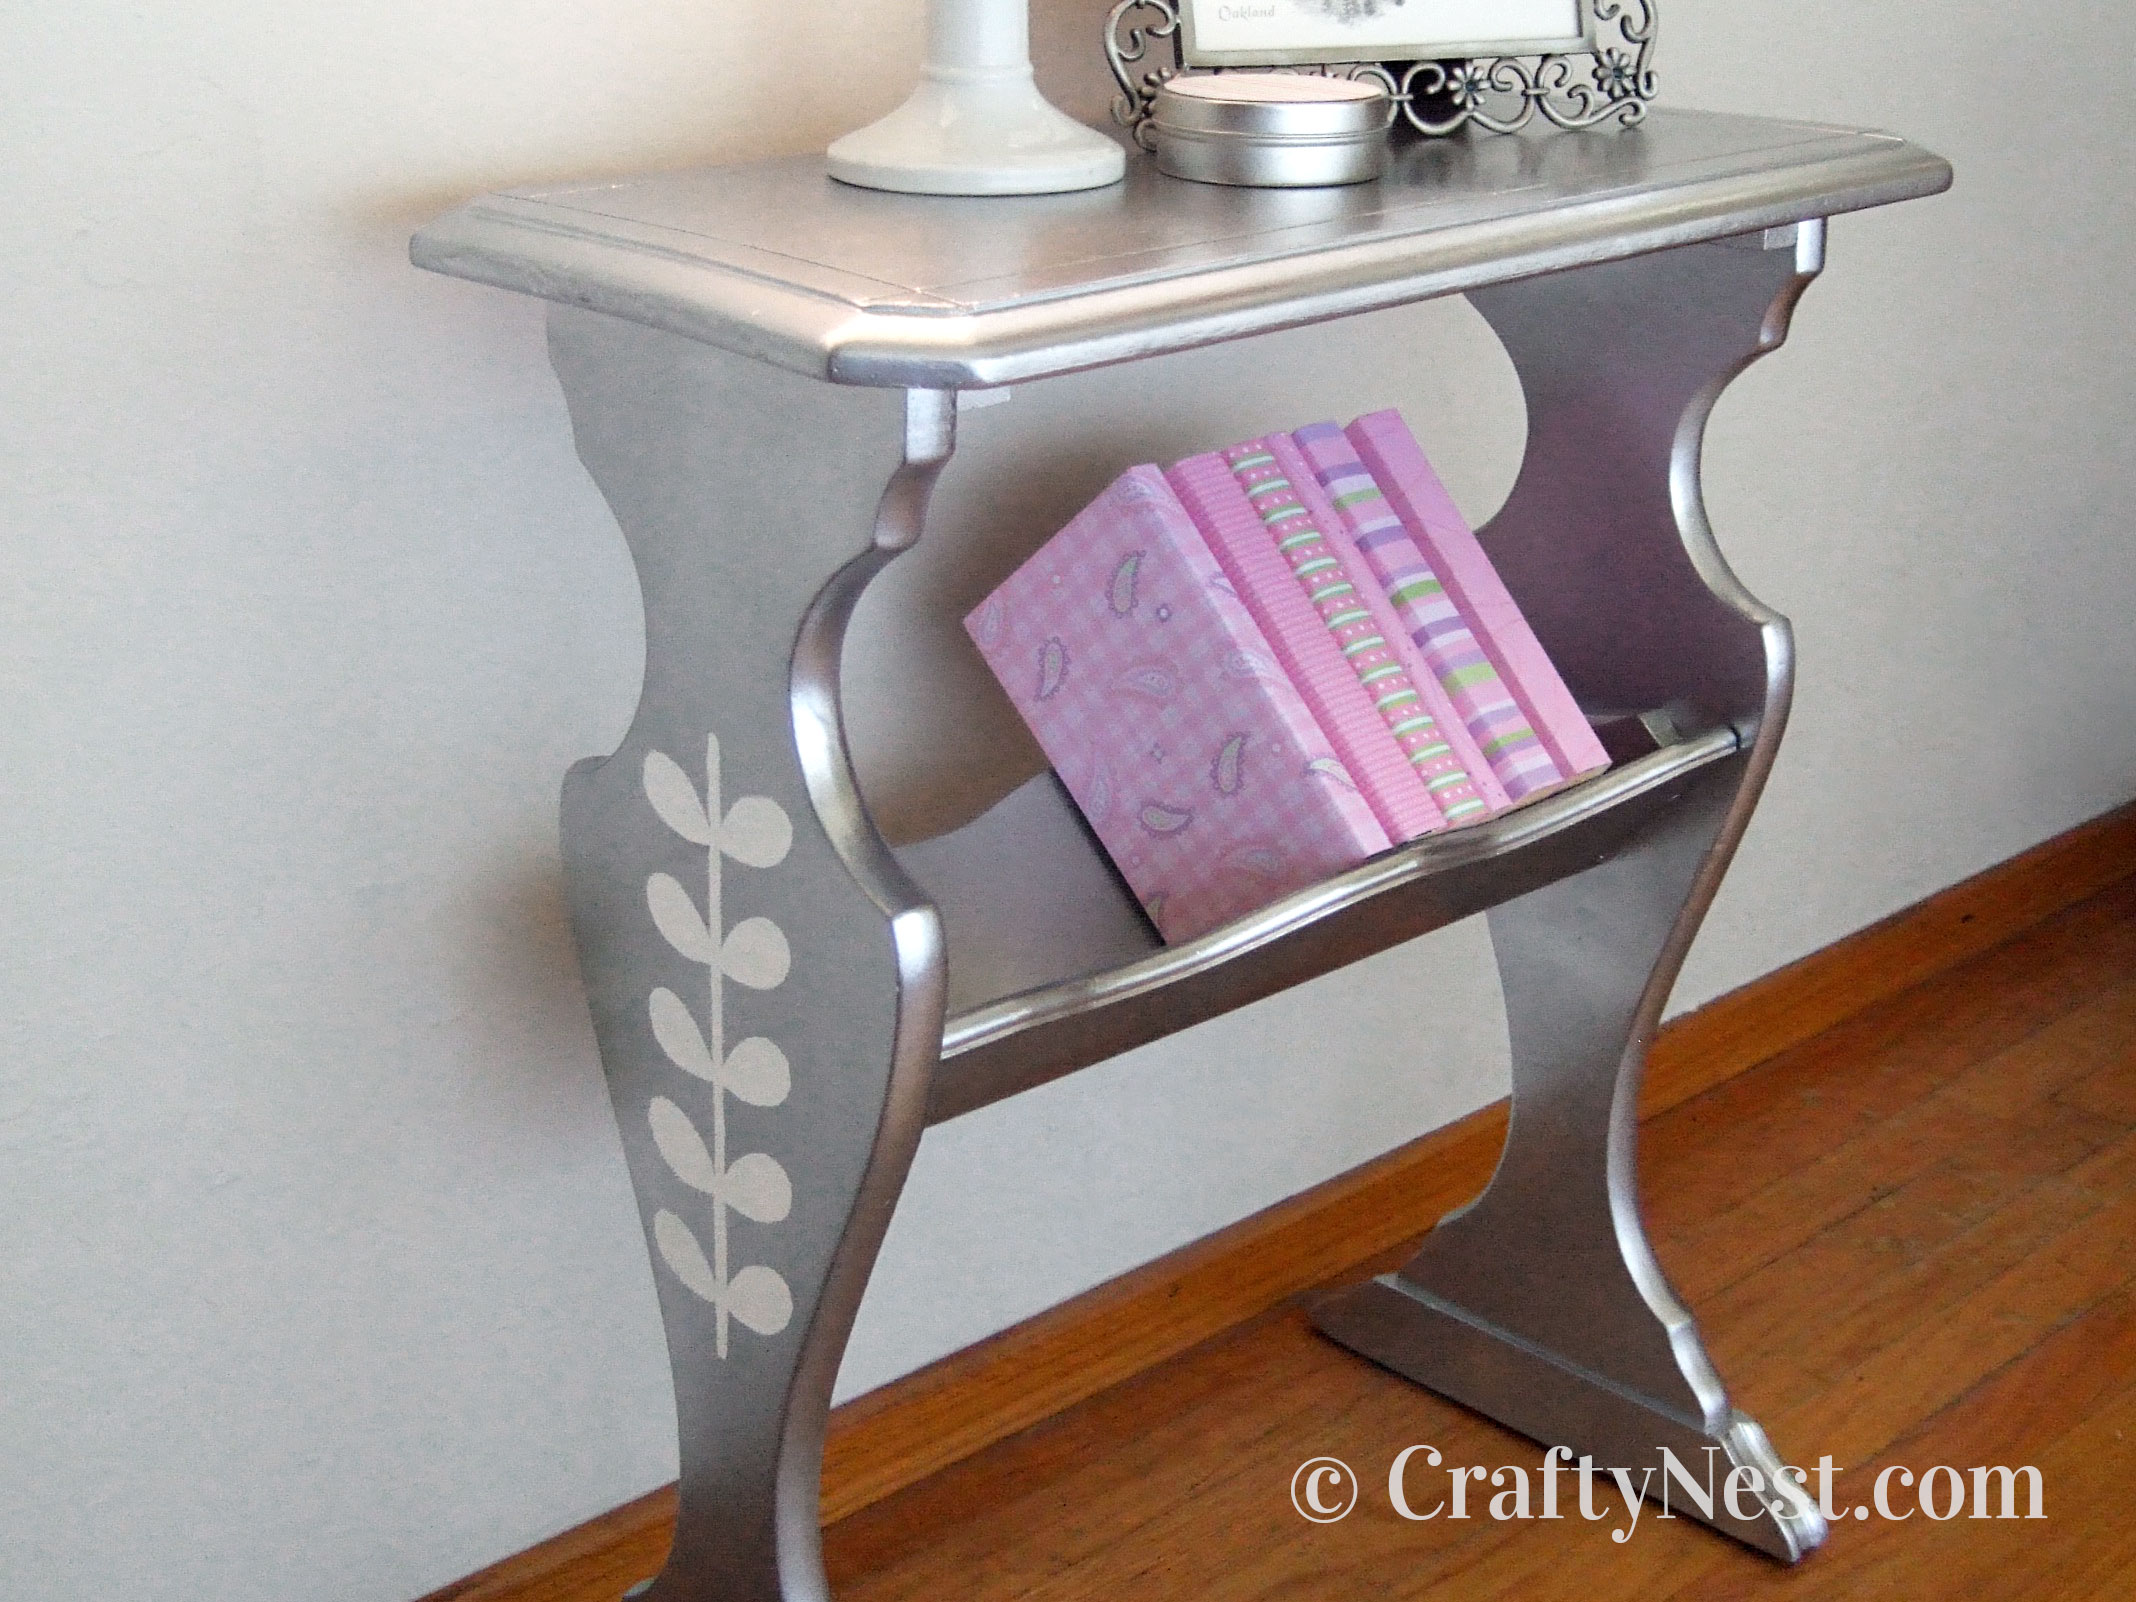 Small silver painted library table, photo